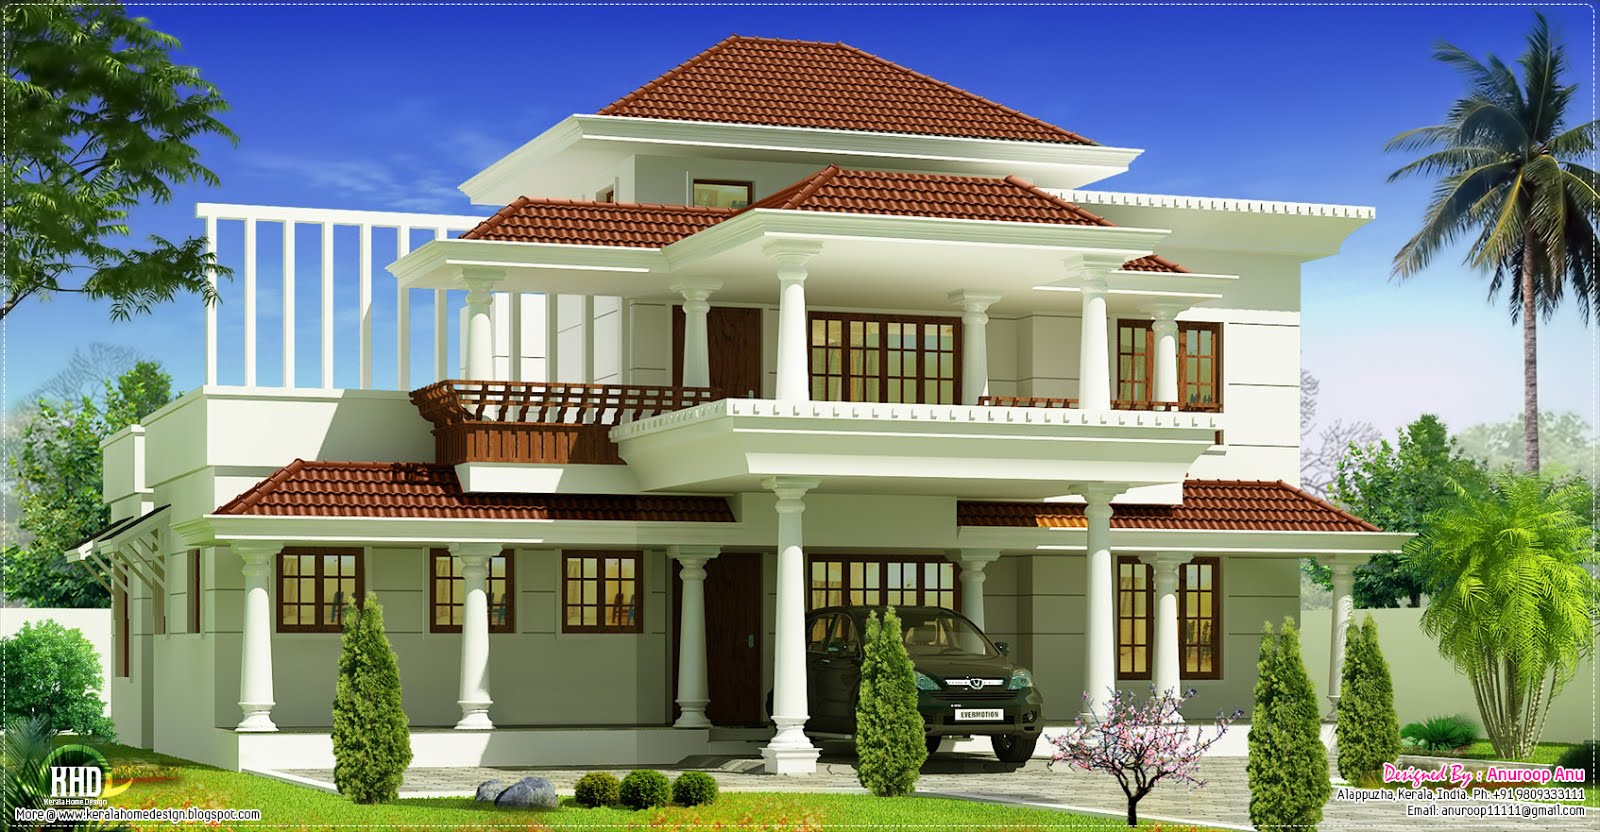 Kerala house models houses plans designs New home models and plans